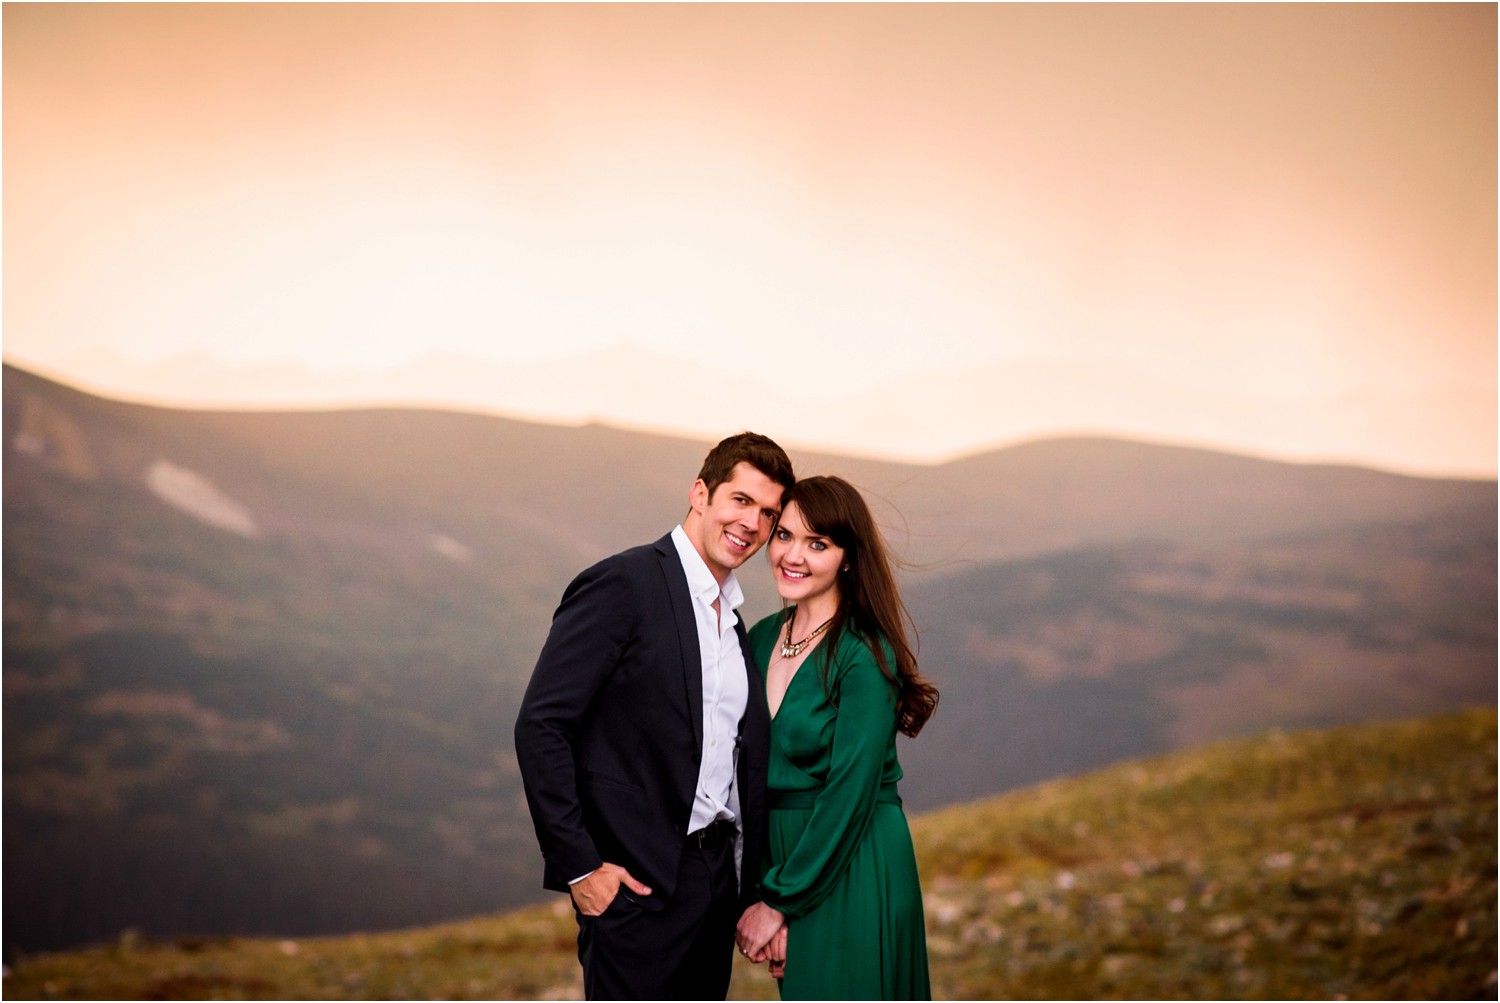 Rocky-mountain-national-Park-engagement-photography_0051.jpg